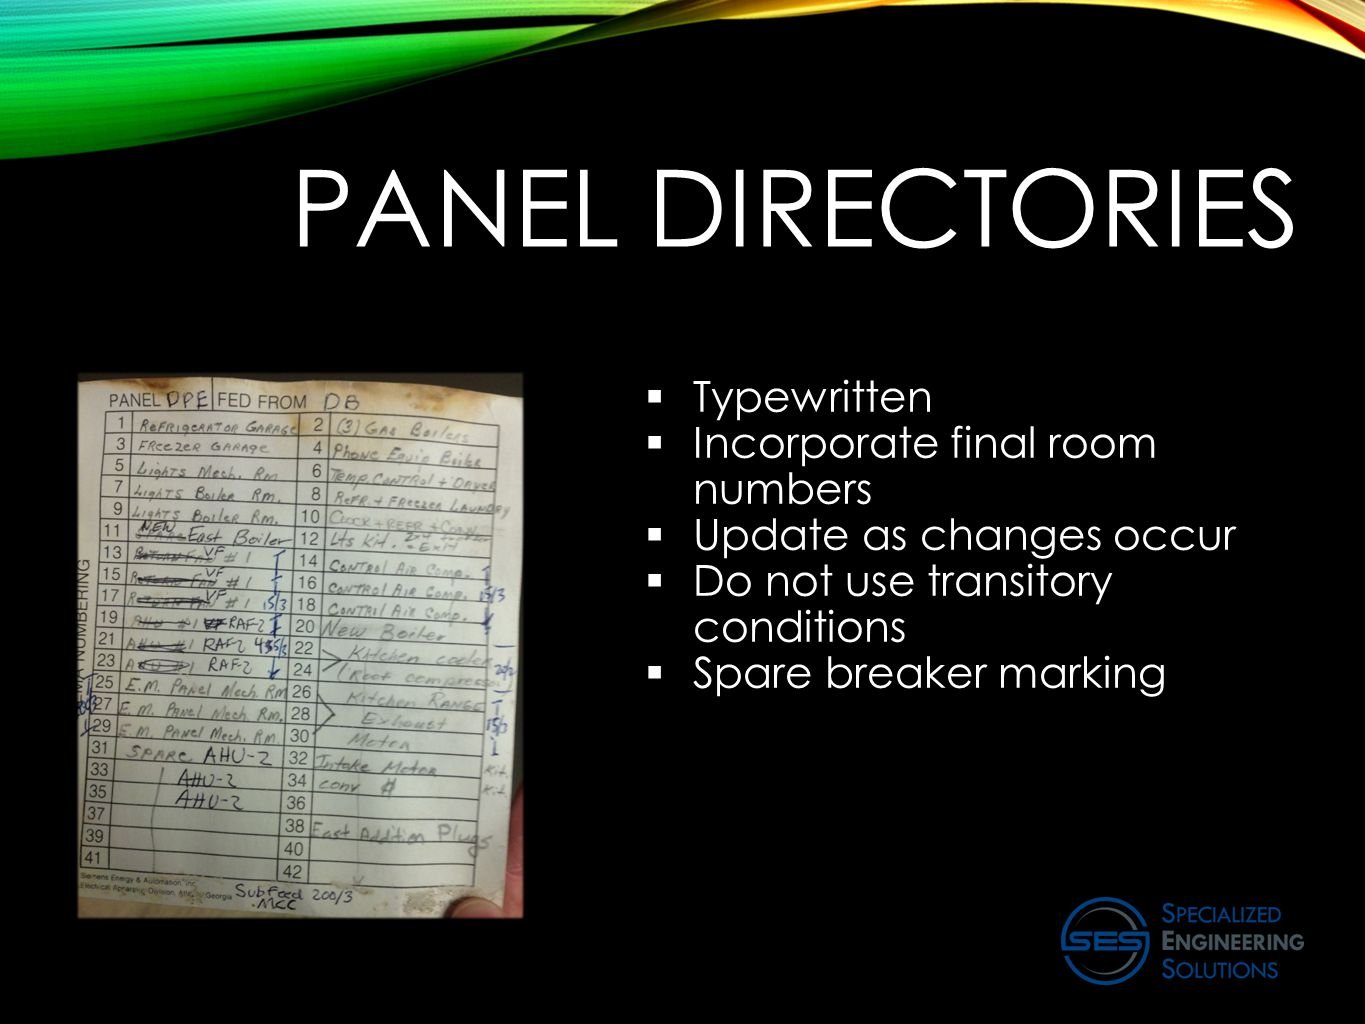 PANEL DIRECTORIES  Typewritten  Incorporate final room numbers  Update as changes occur  Do not use transitory conditions  Spare breaker marking